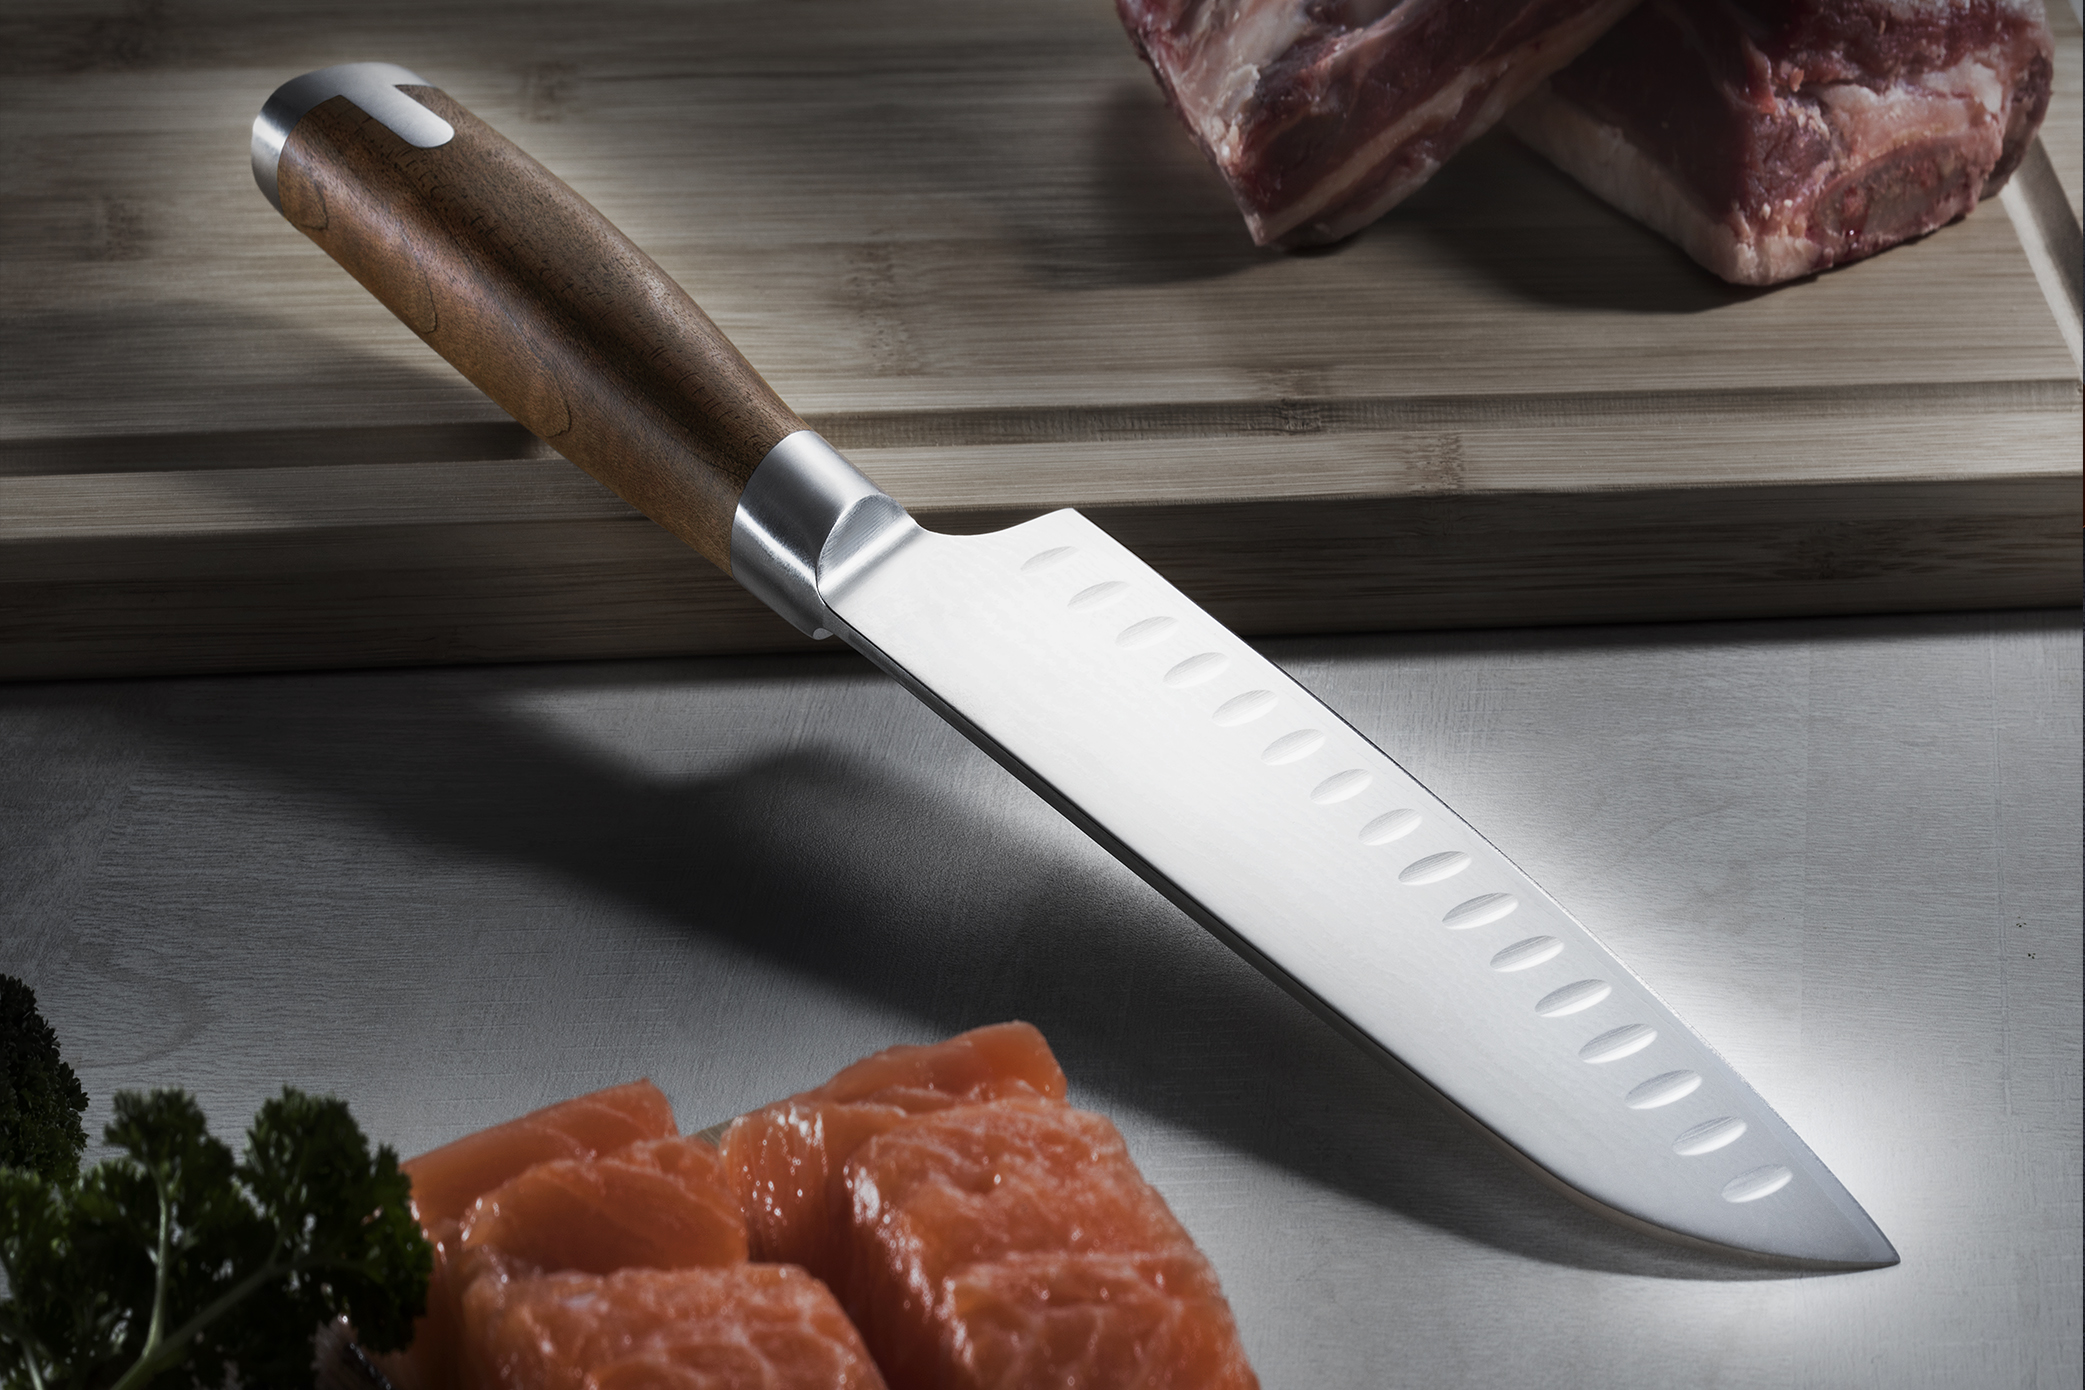 Japanese Santoku knife